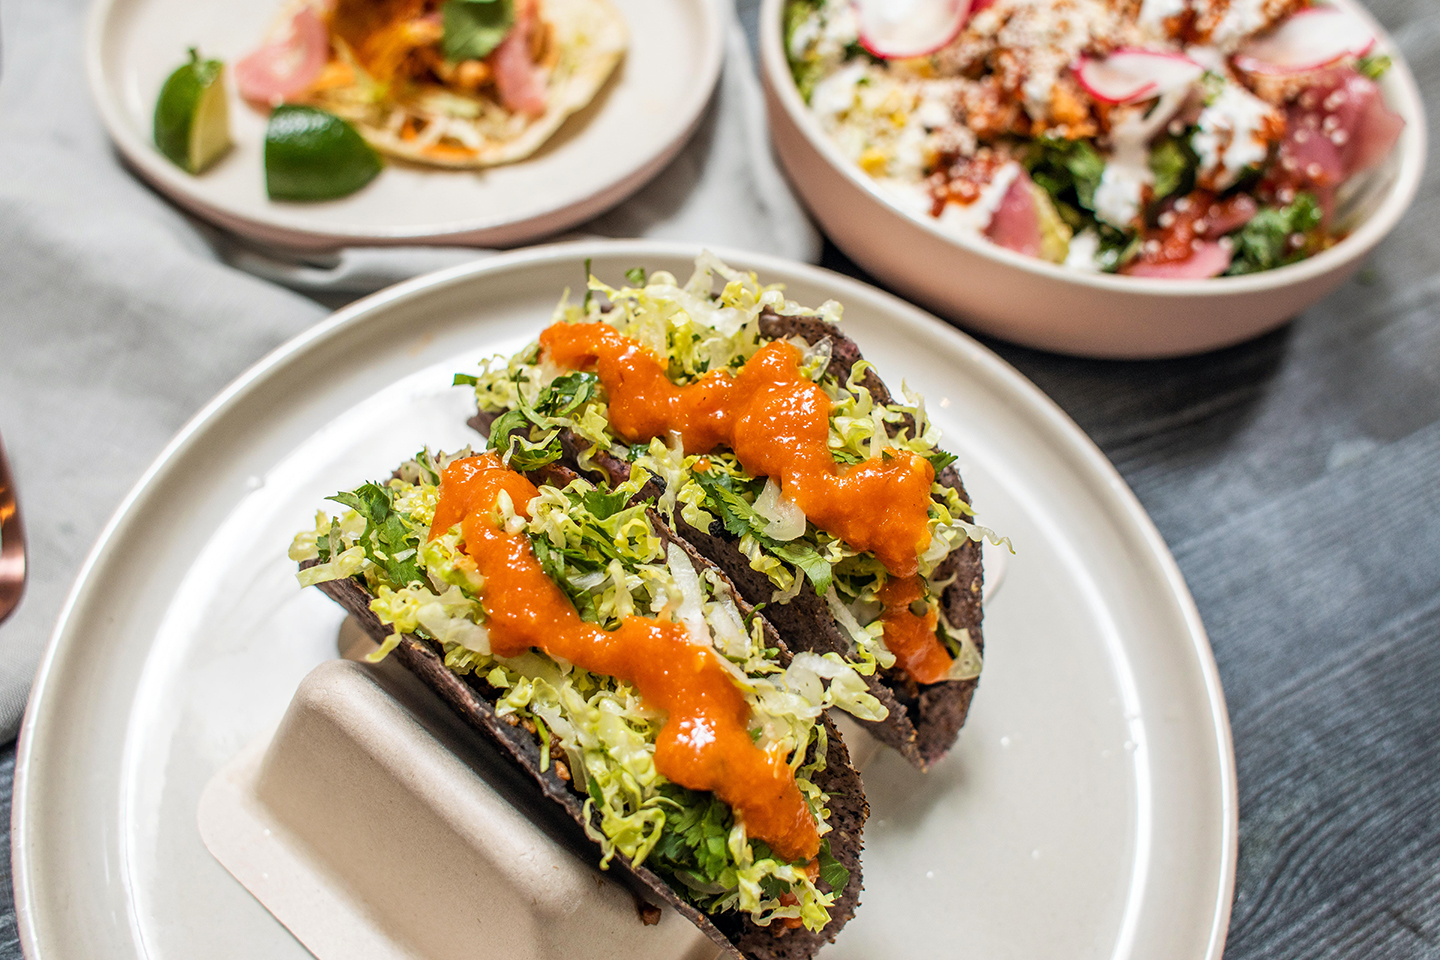 Two tacos sit side-by-side on a plate, topped with lettuce and sauce, with a blurry plated taco in the background